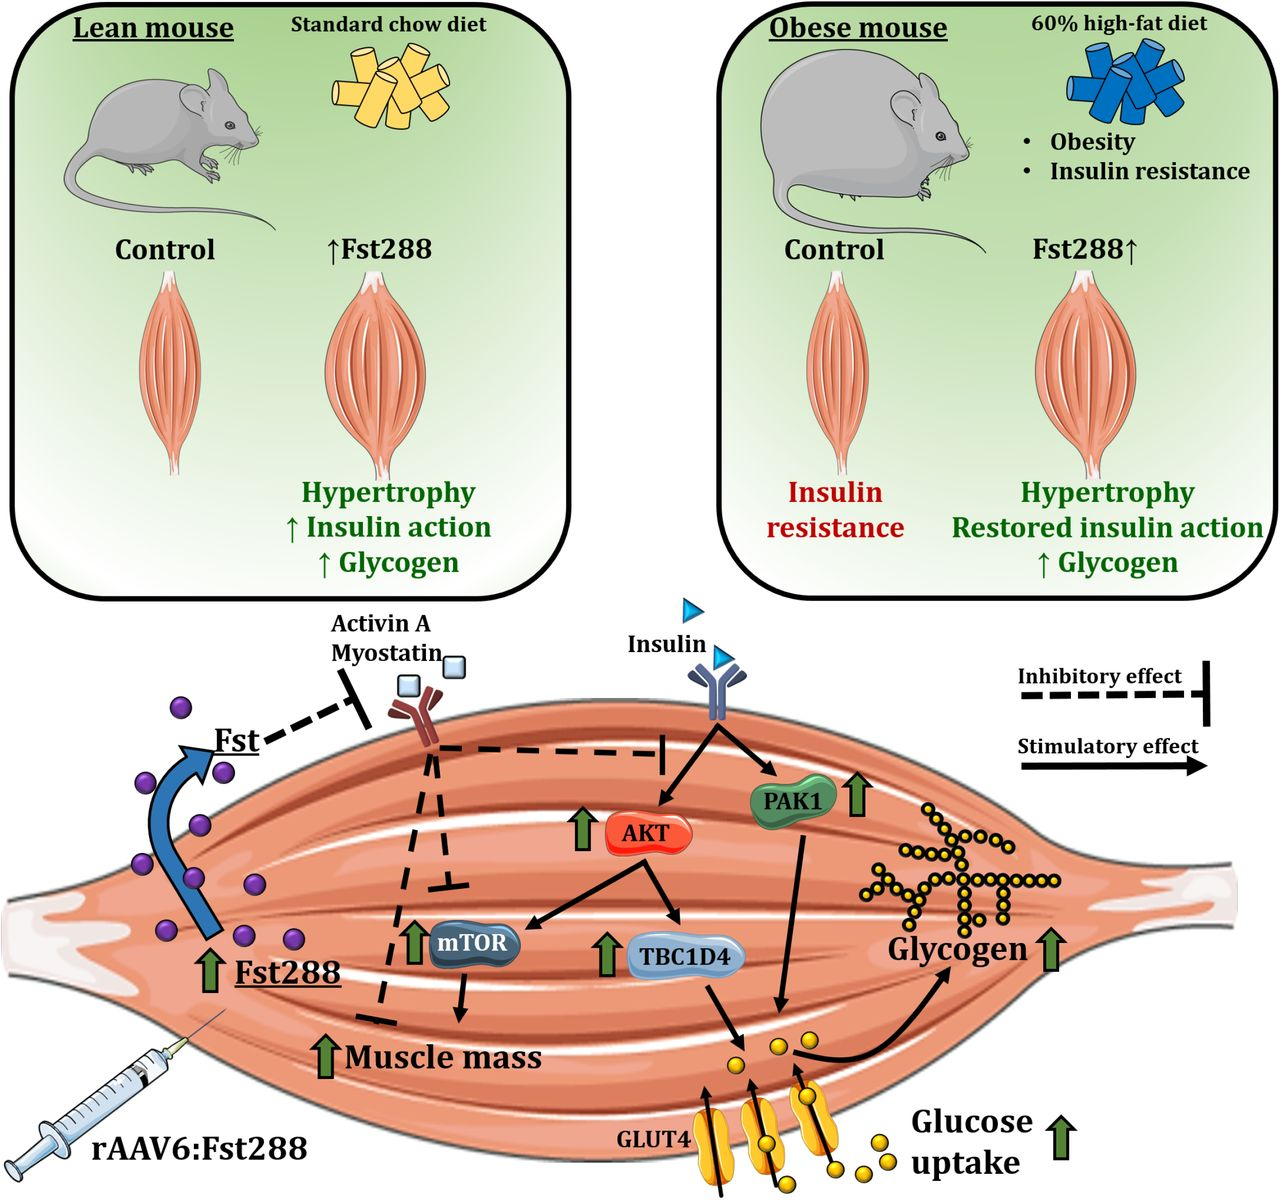 Mechanisms involved in follistatin-induced increased insulin